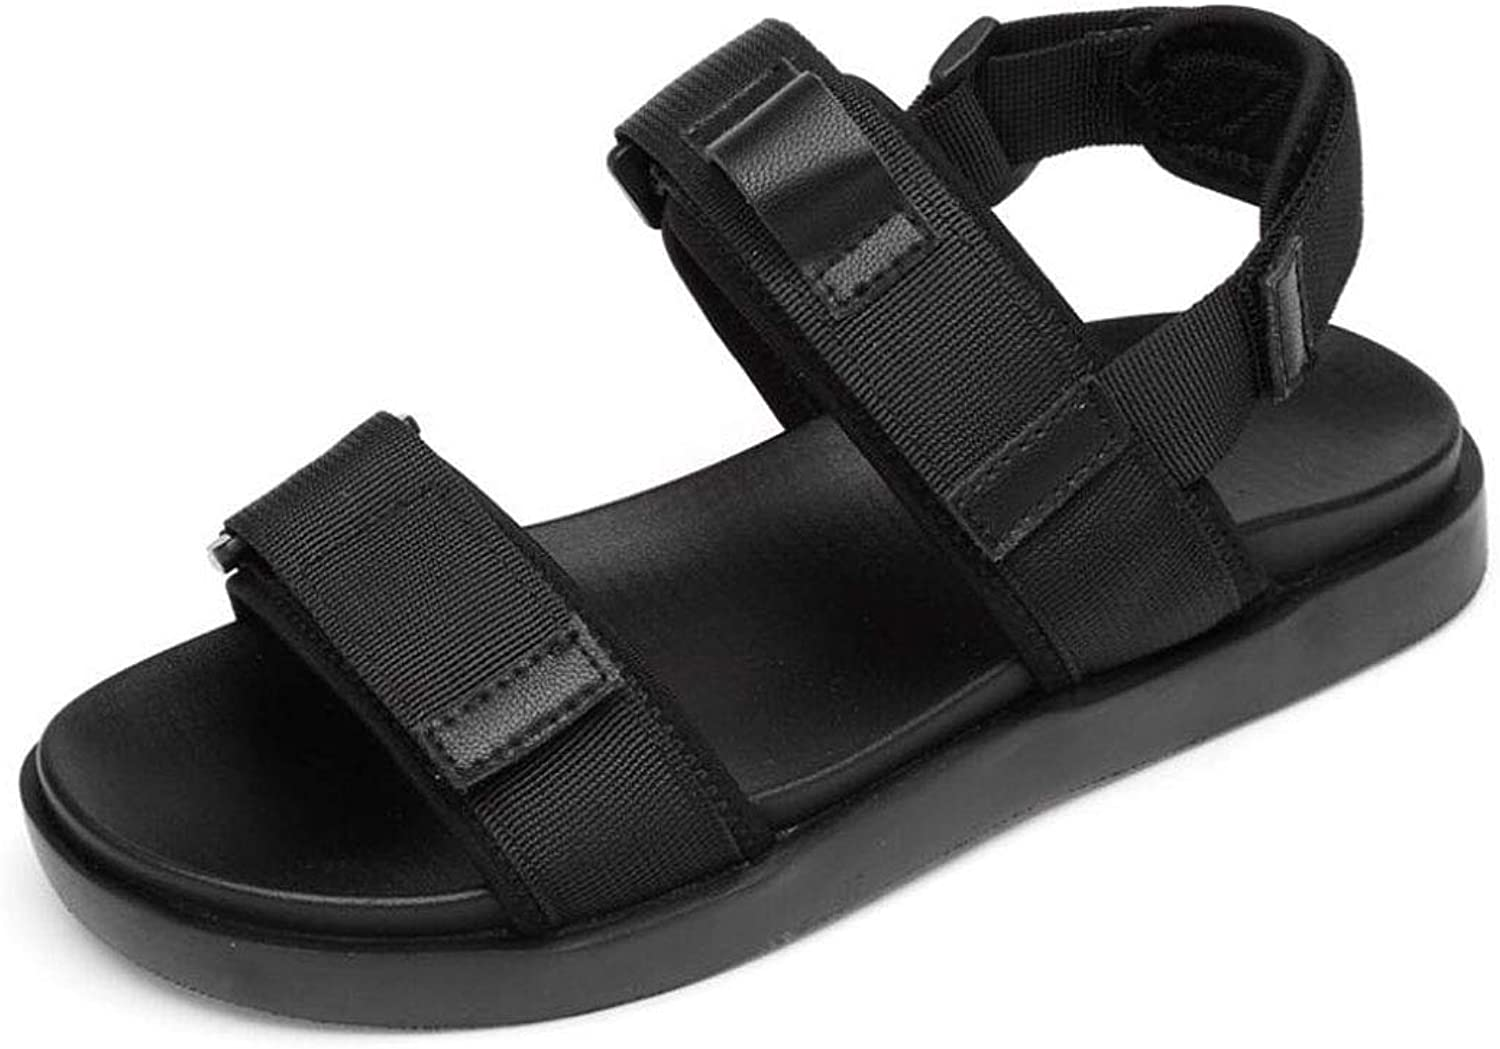 Summer Sandals Men's Casual Beach shoes Webbing Breathable Men's Sandals And Slippers Men's shoes